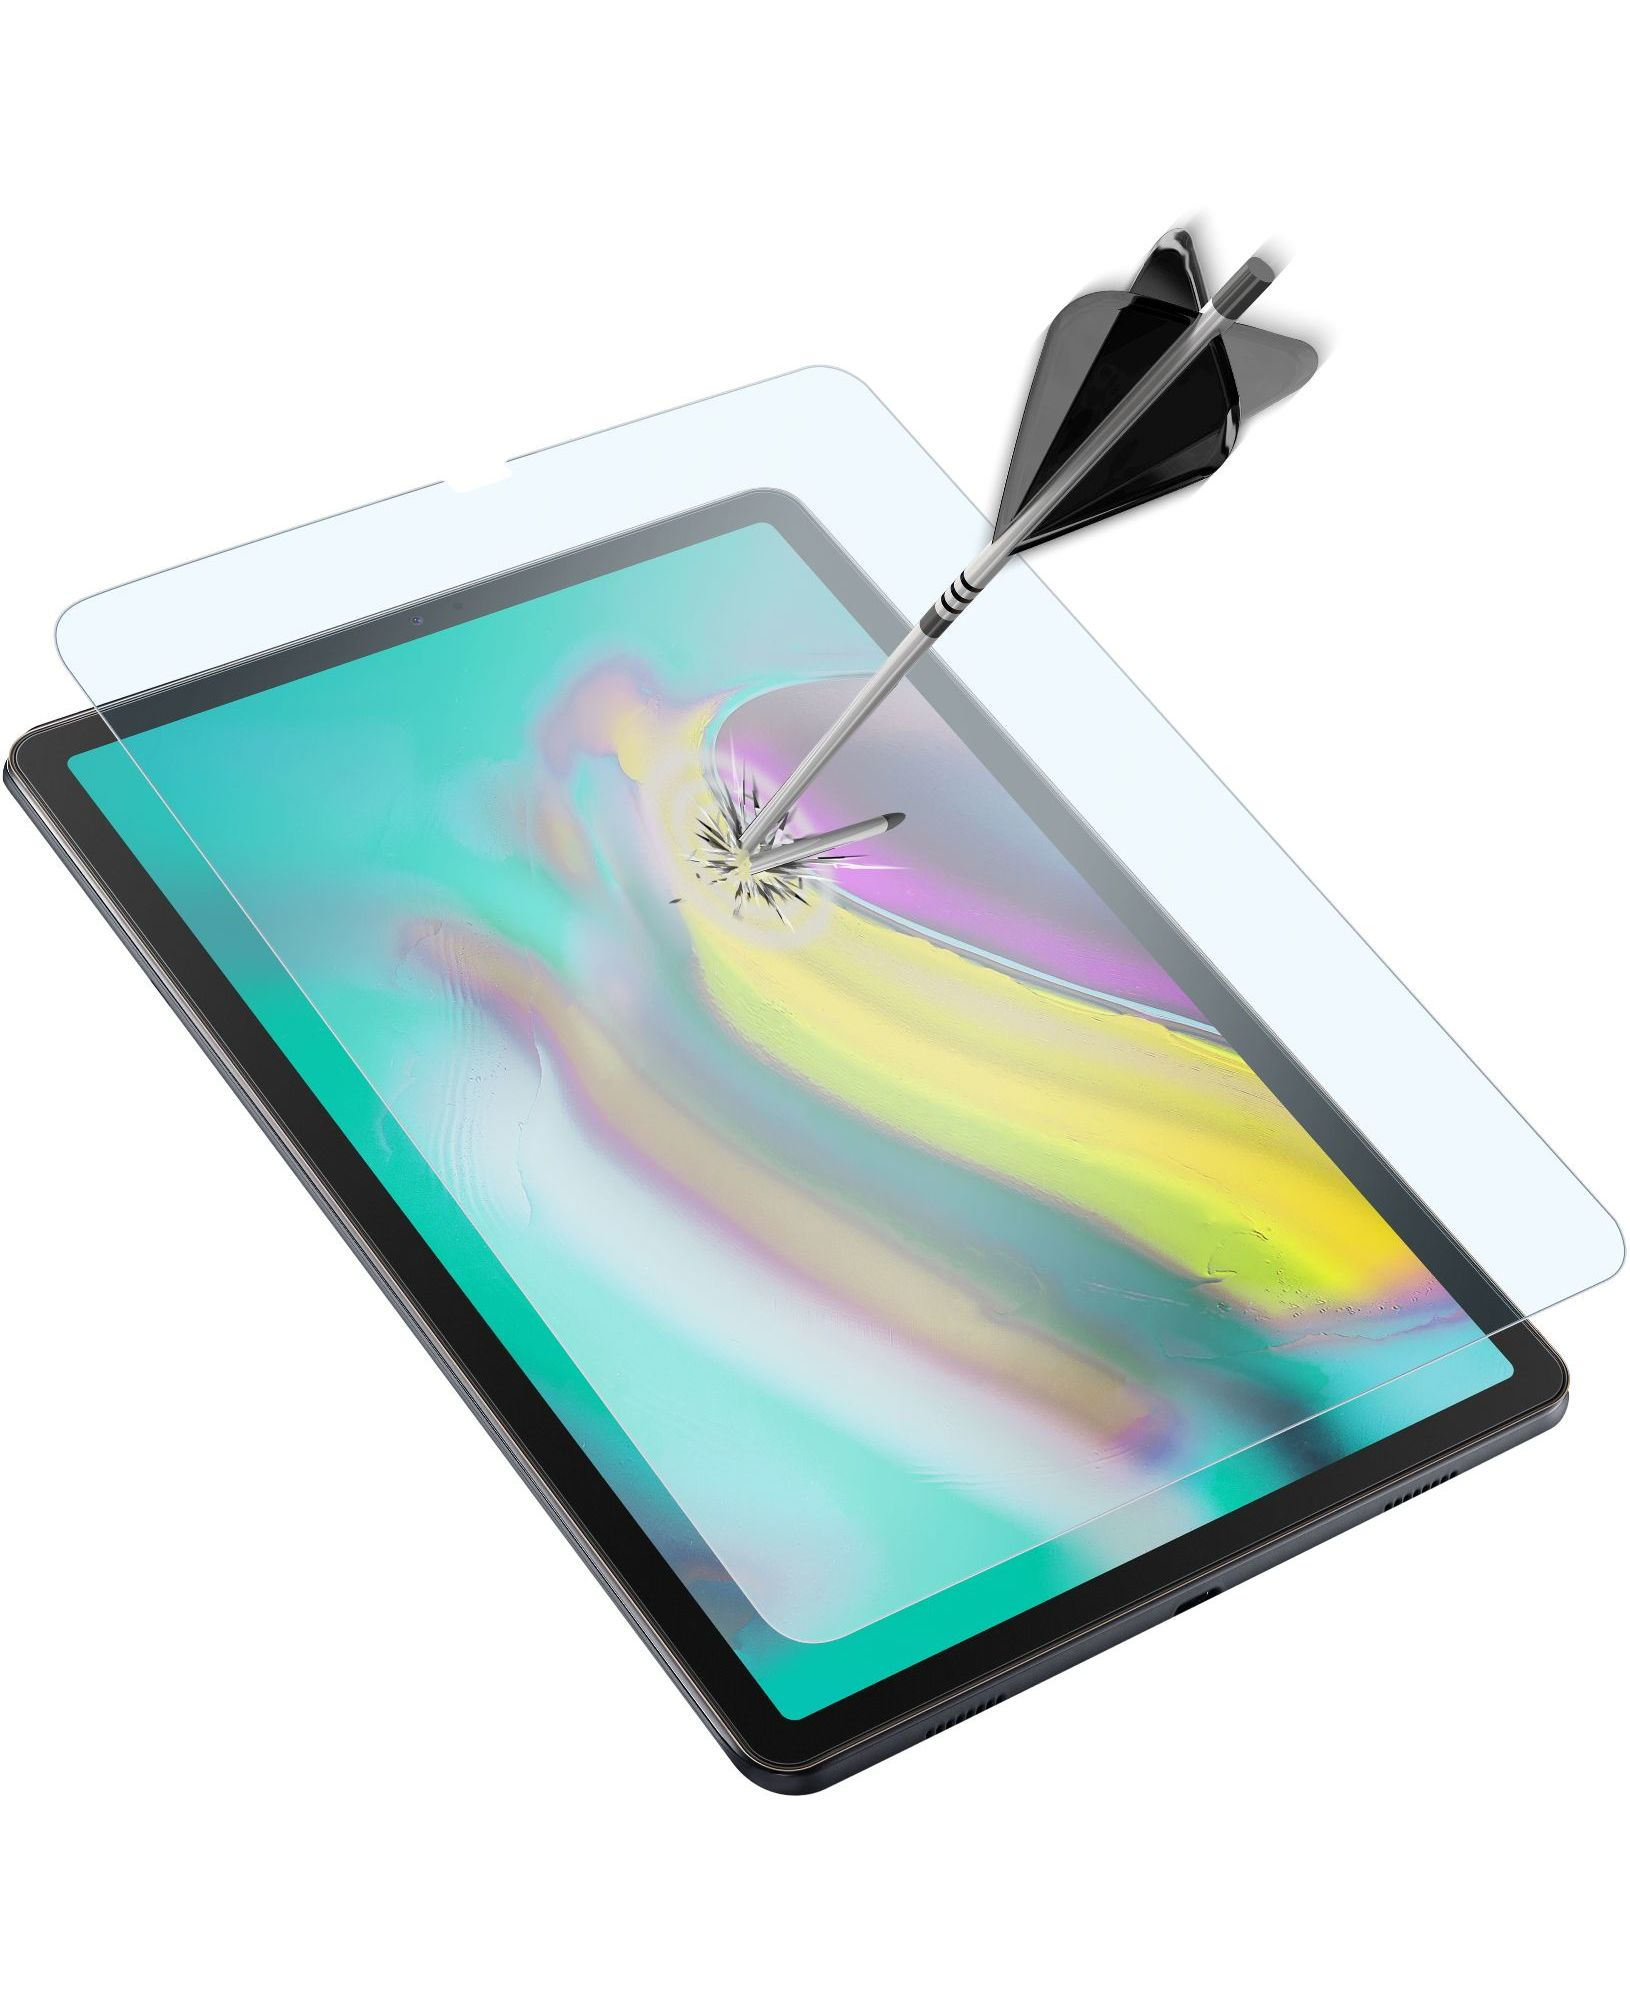 Samsung Galaxy Tab S5e, SP second glass, transparent